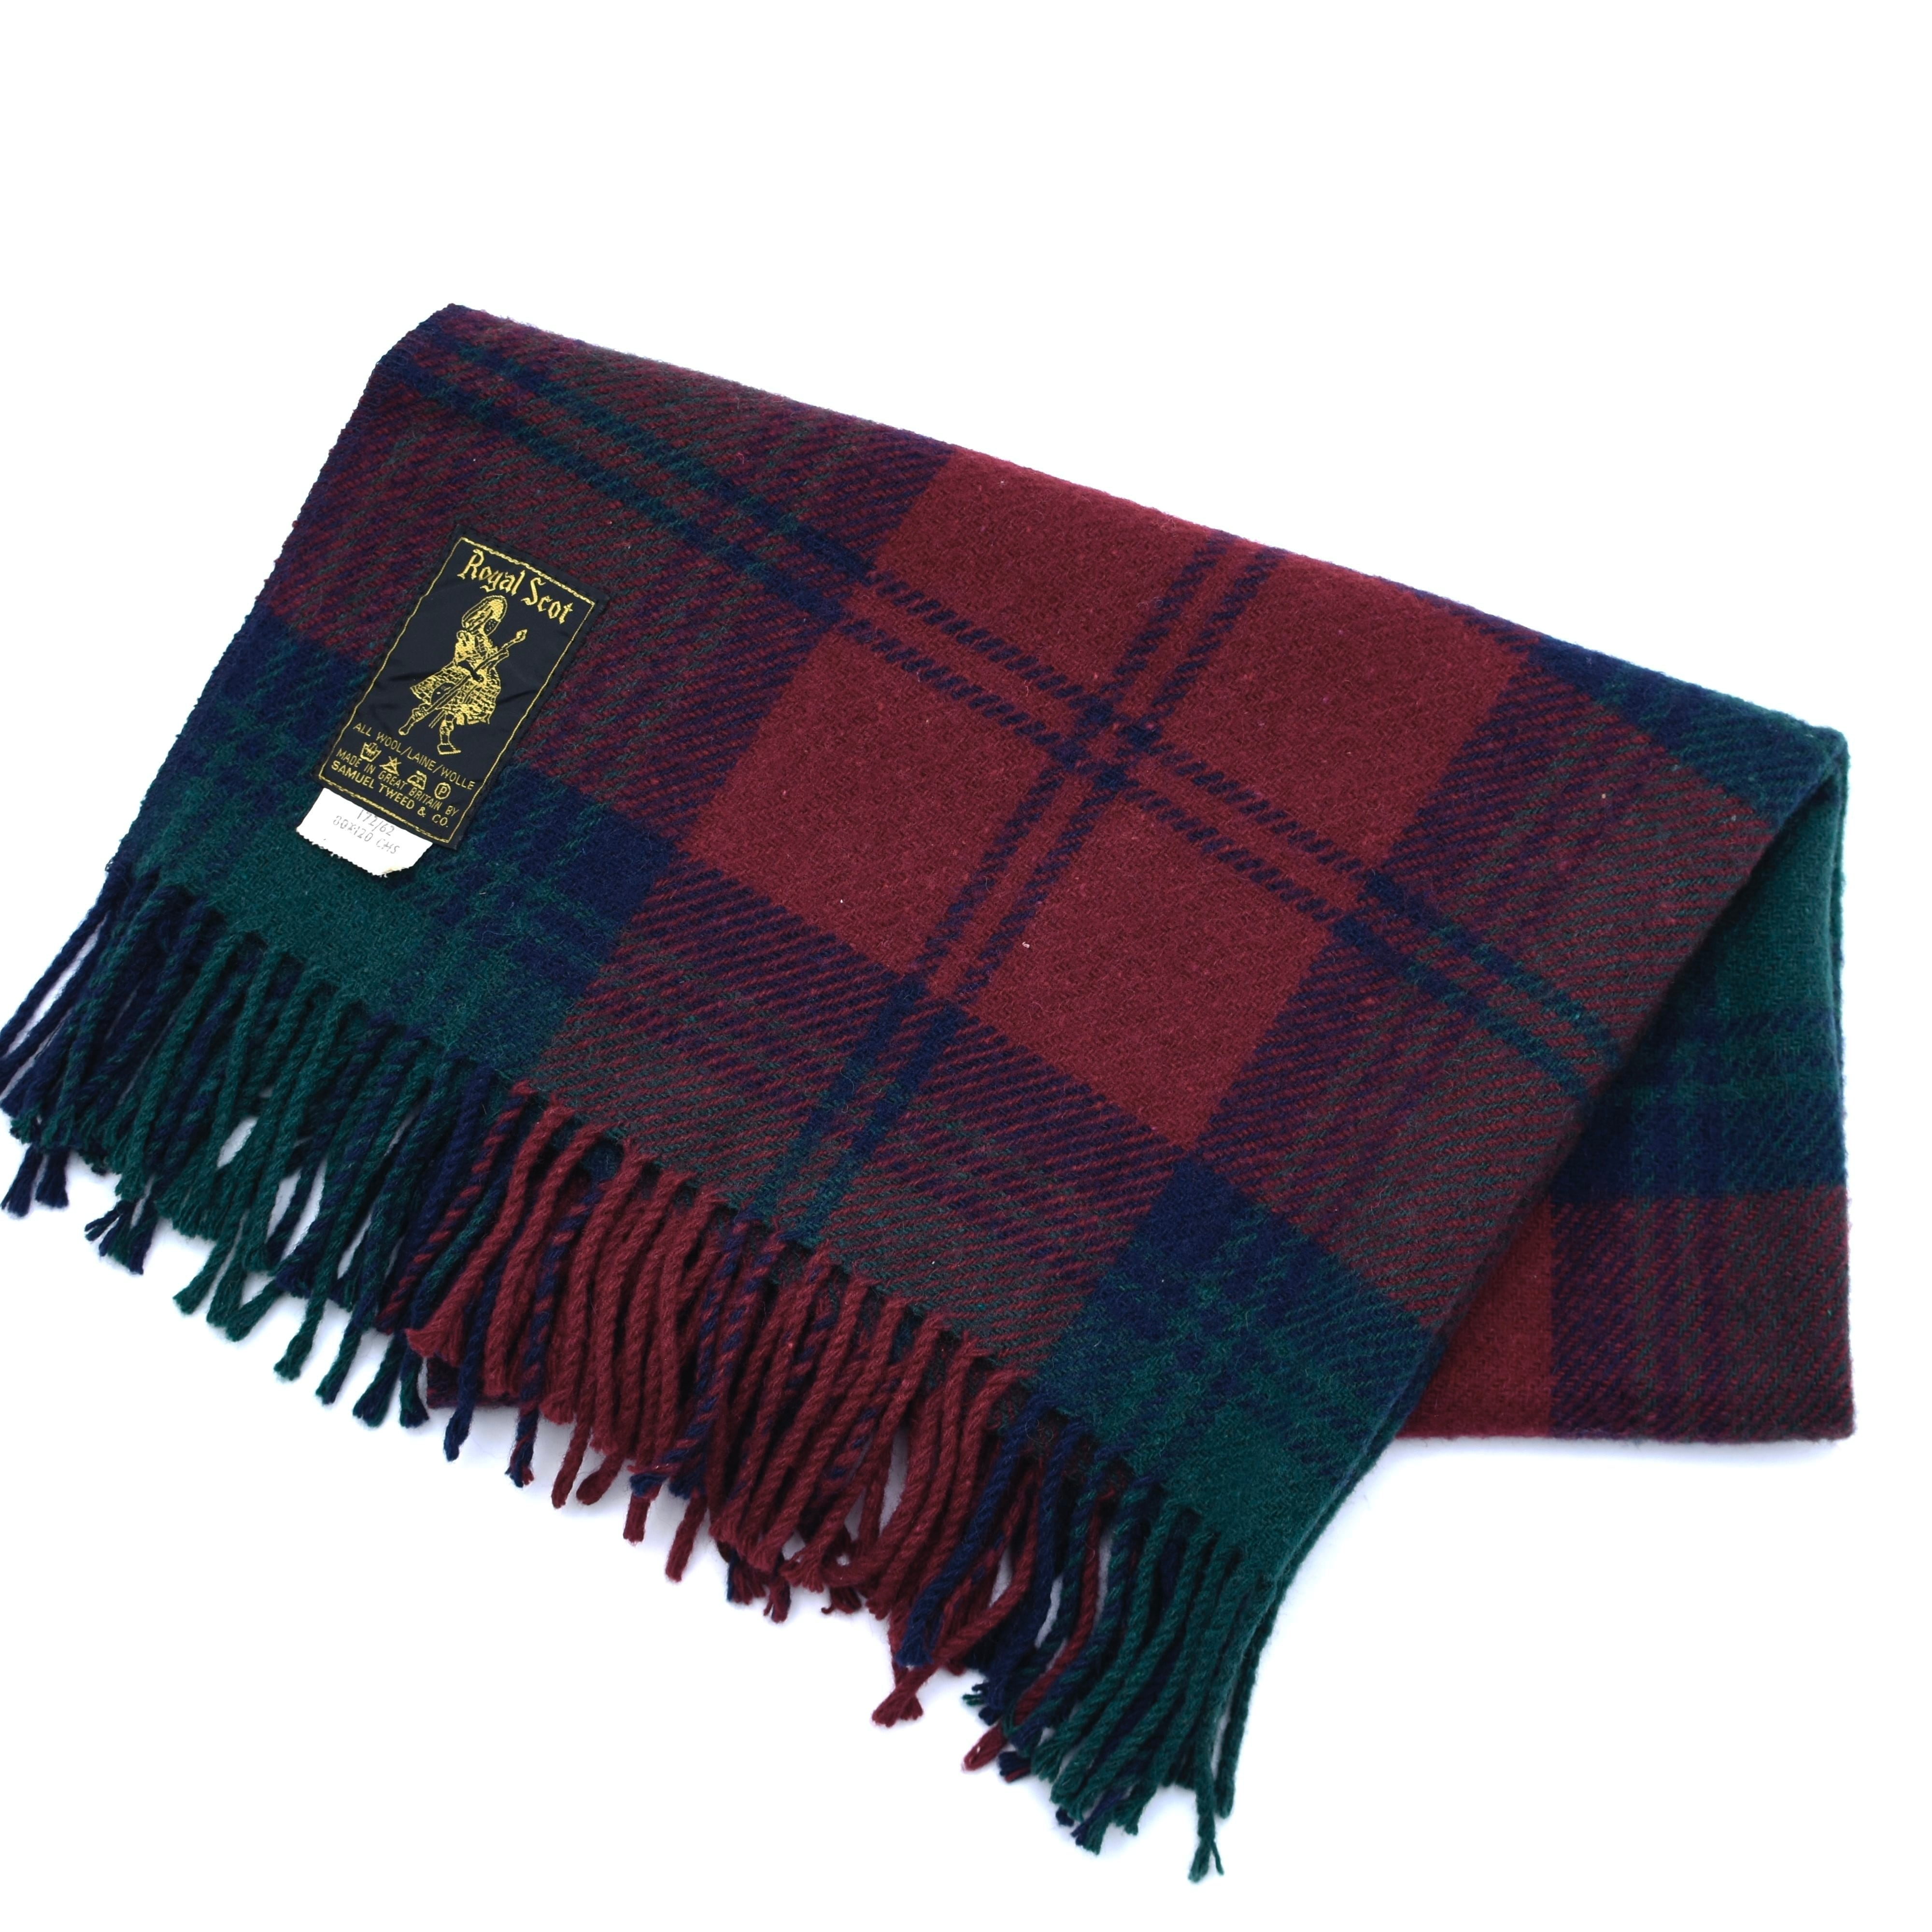 Vintage Made in Great Britain Royal Scot stole